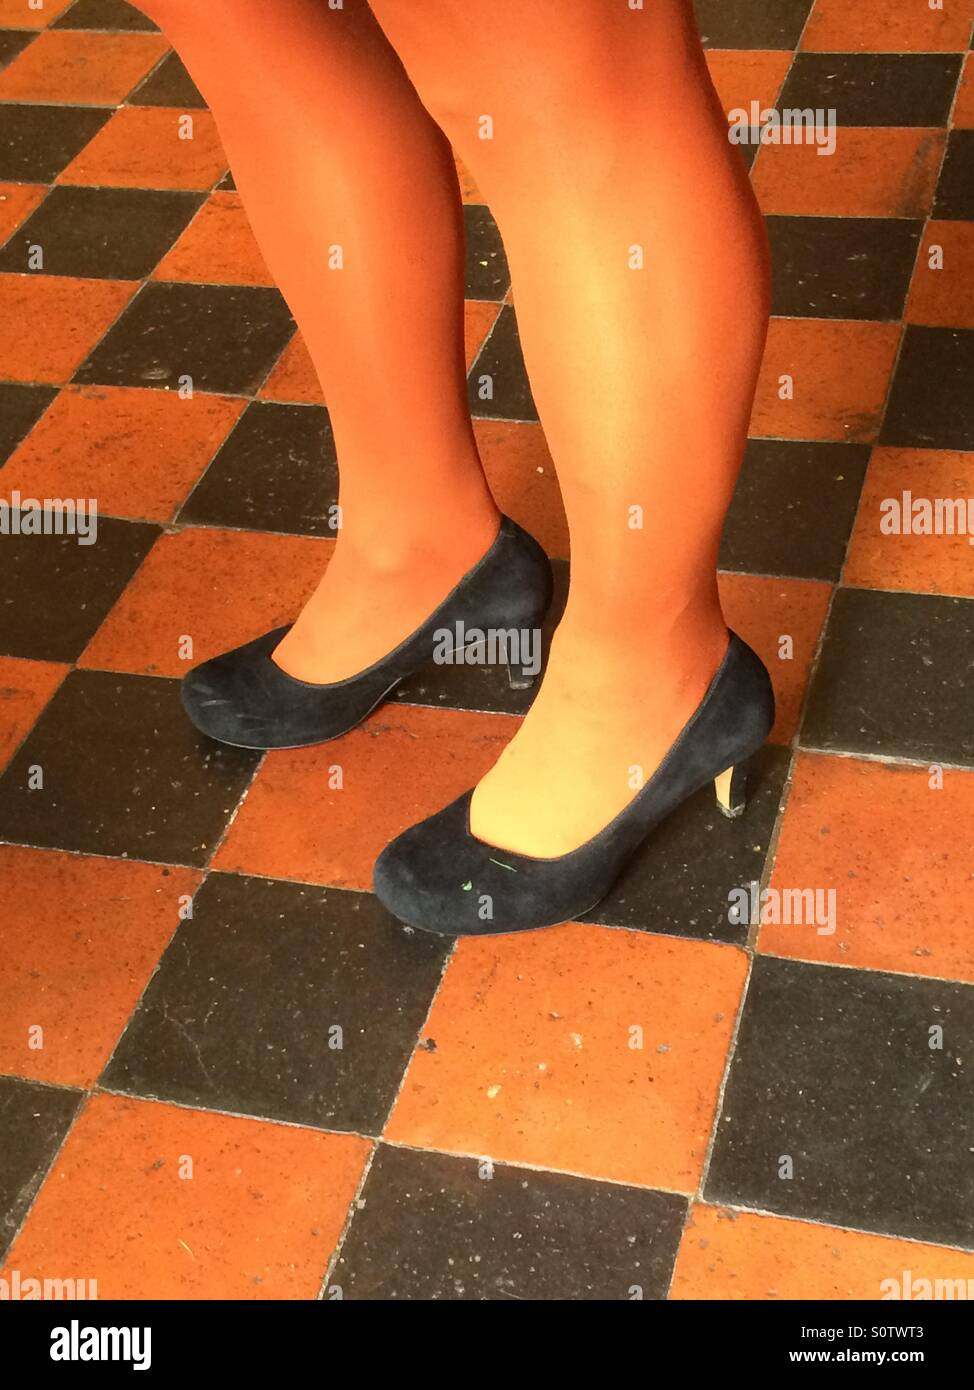 Woman wearing orange tights and black shoes standing on black and orange floor tiles - Stock Image